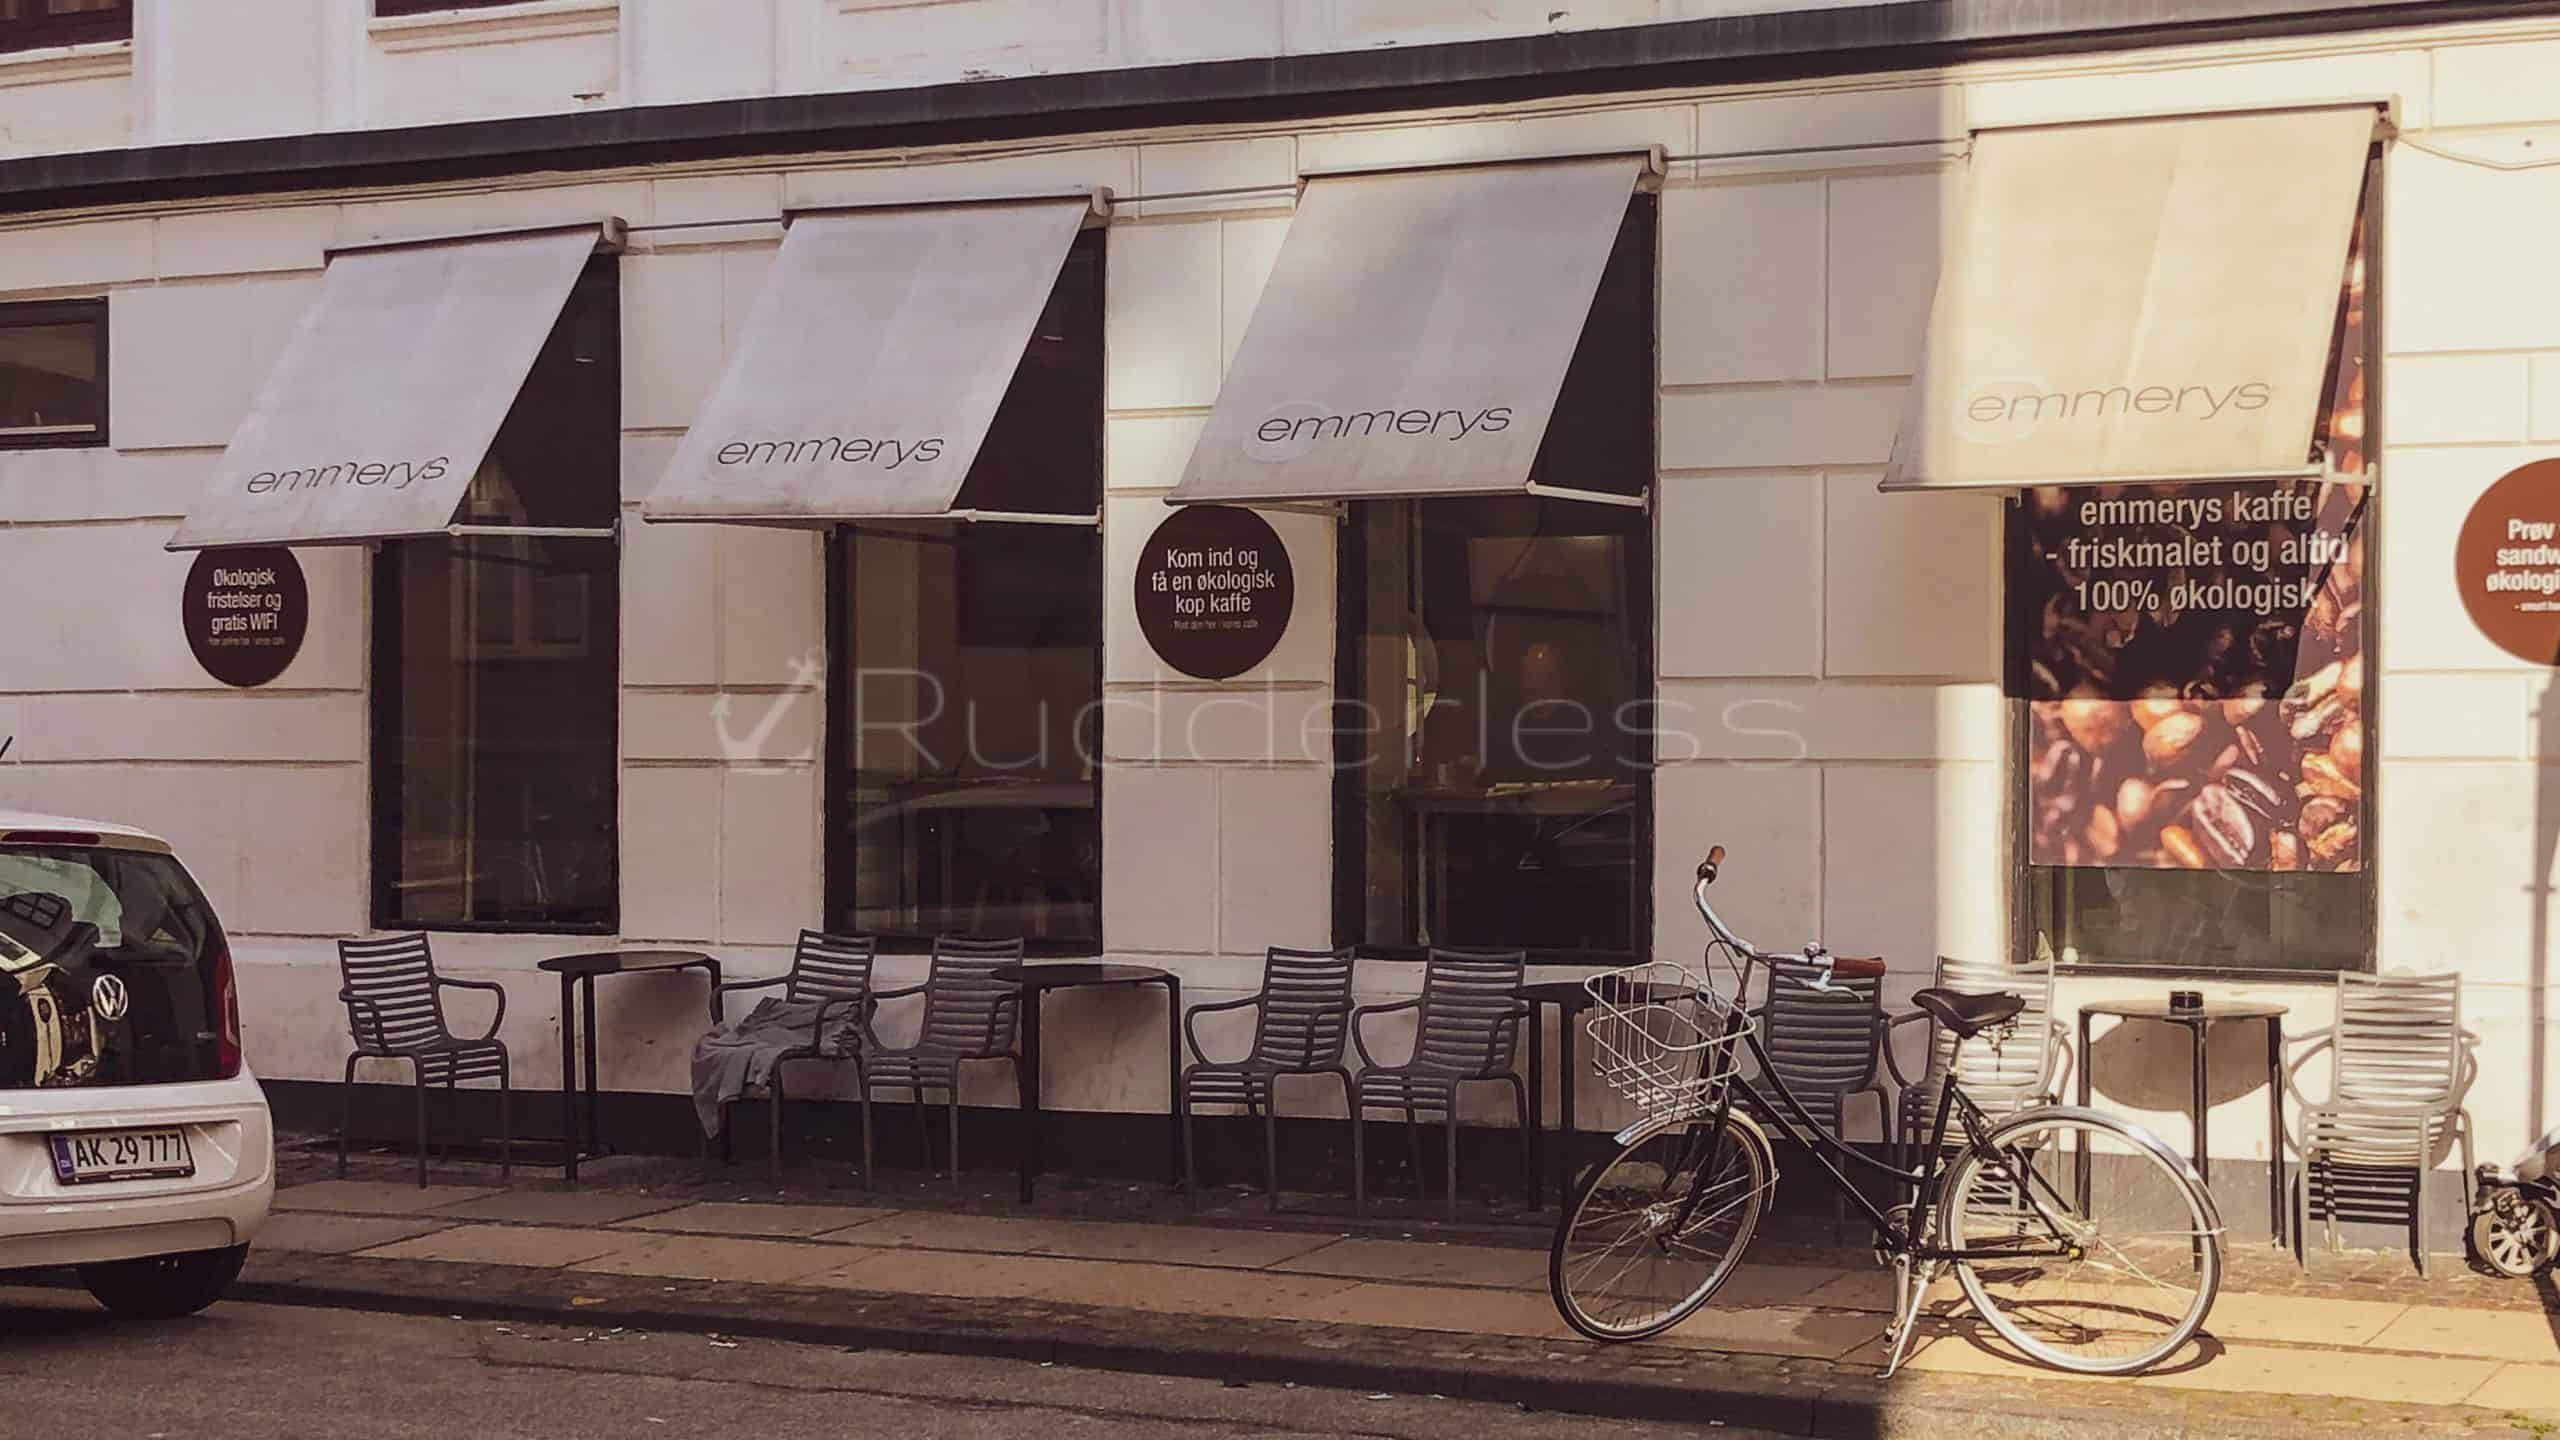 Emmery's - copenhagen food tour